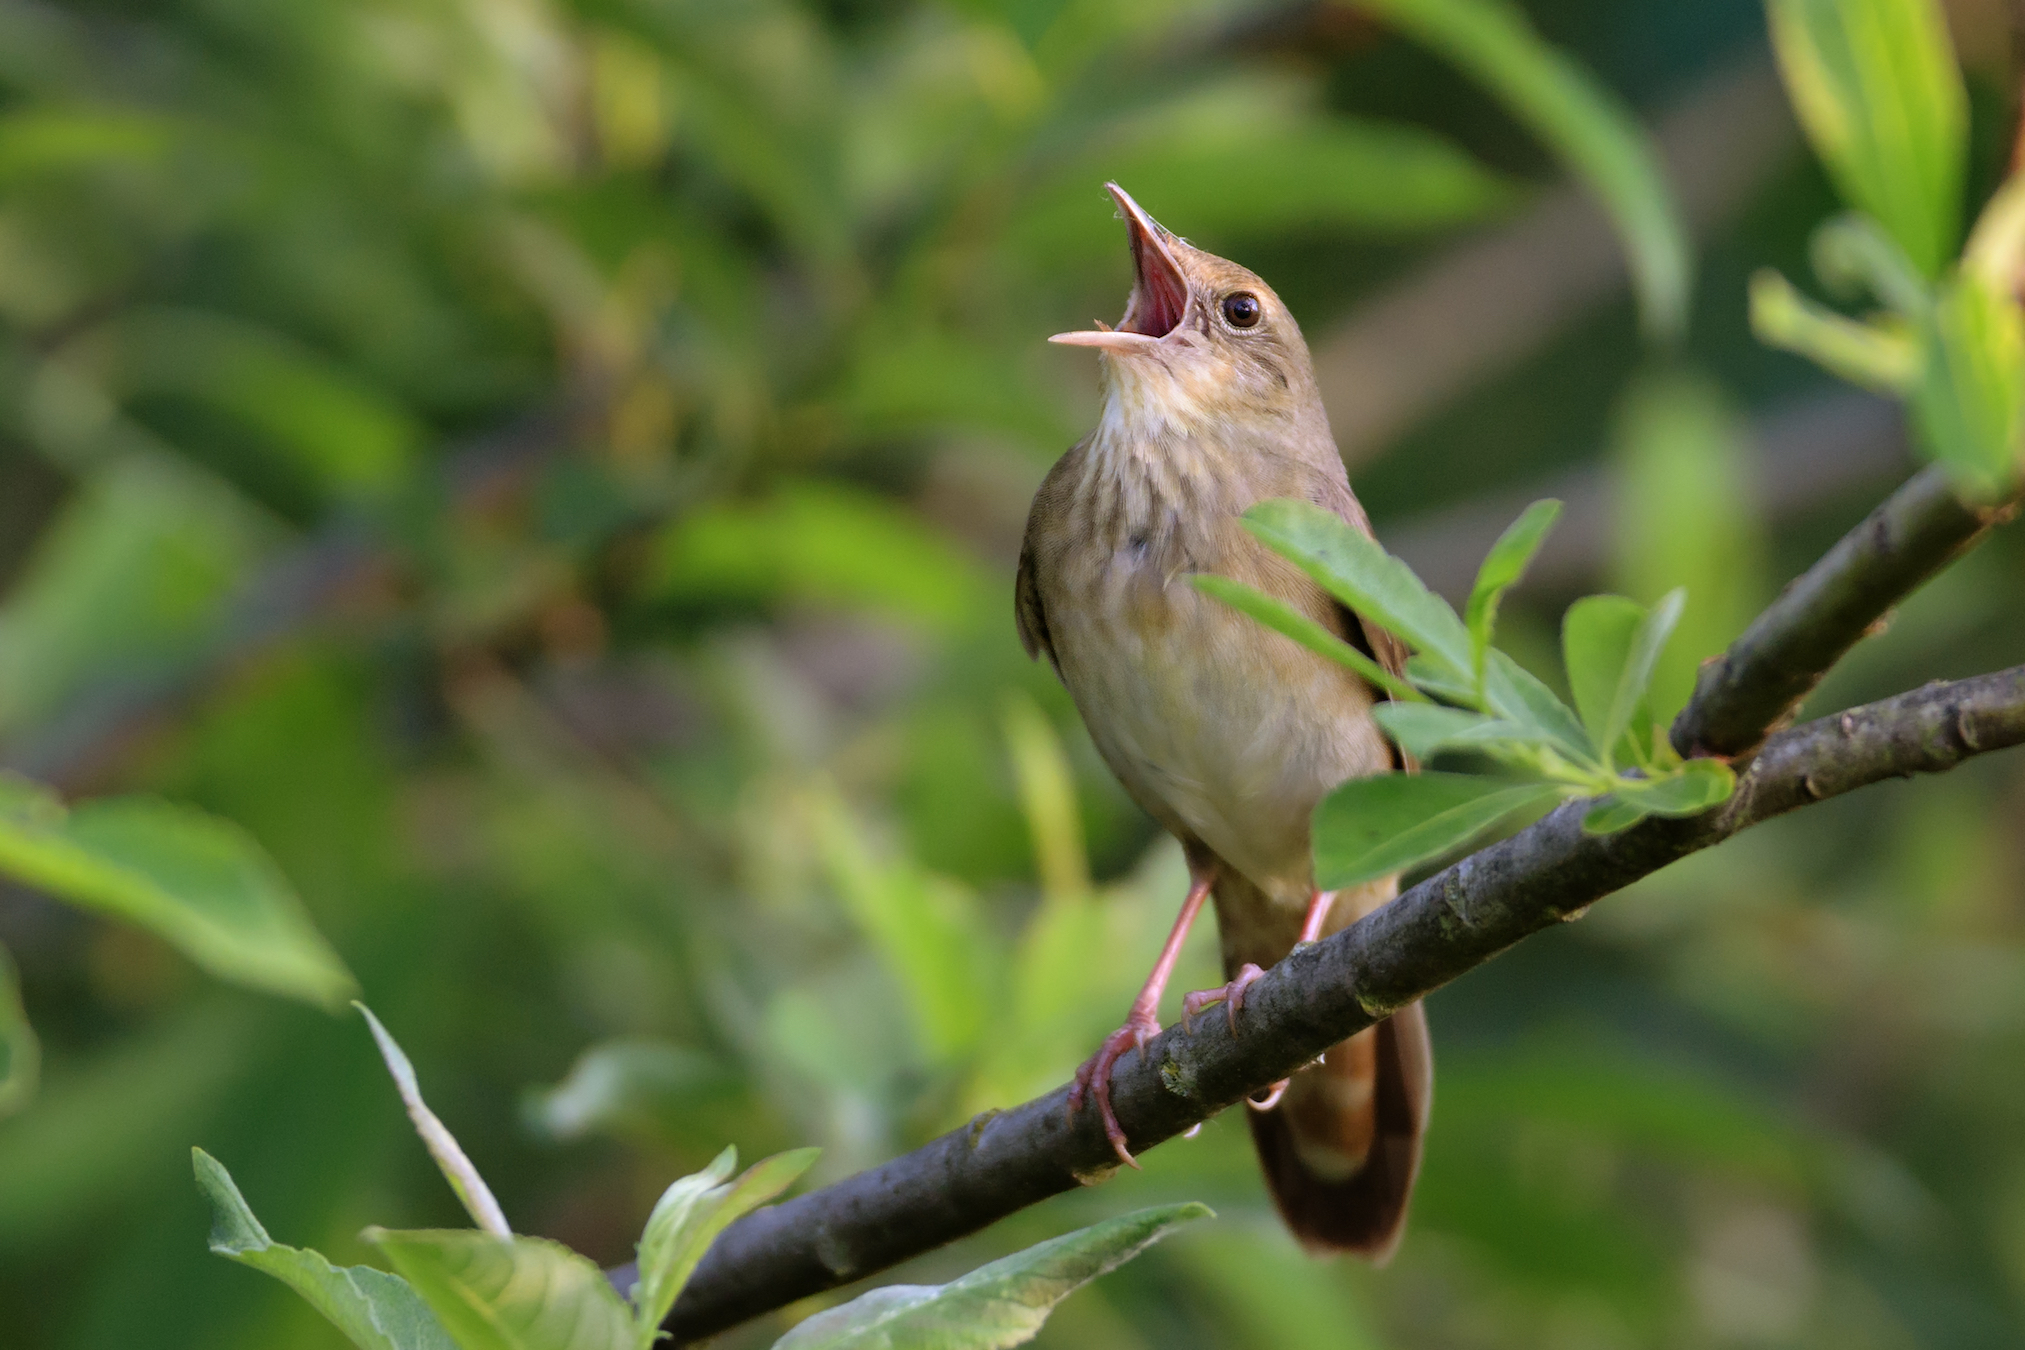 According to a new study, birds have changed both the length and frequencies of their songs as a result of shifts in traffic noise.